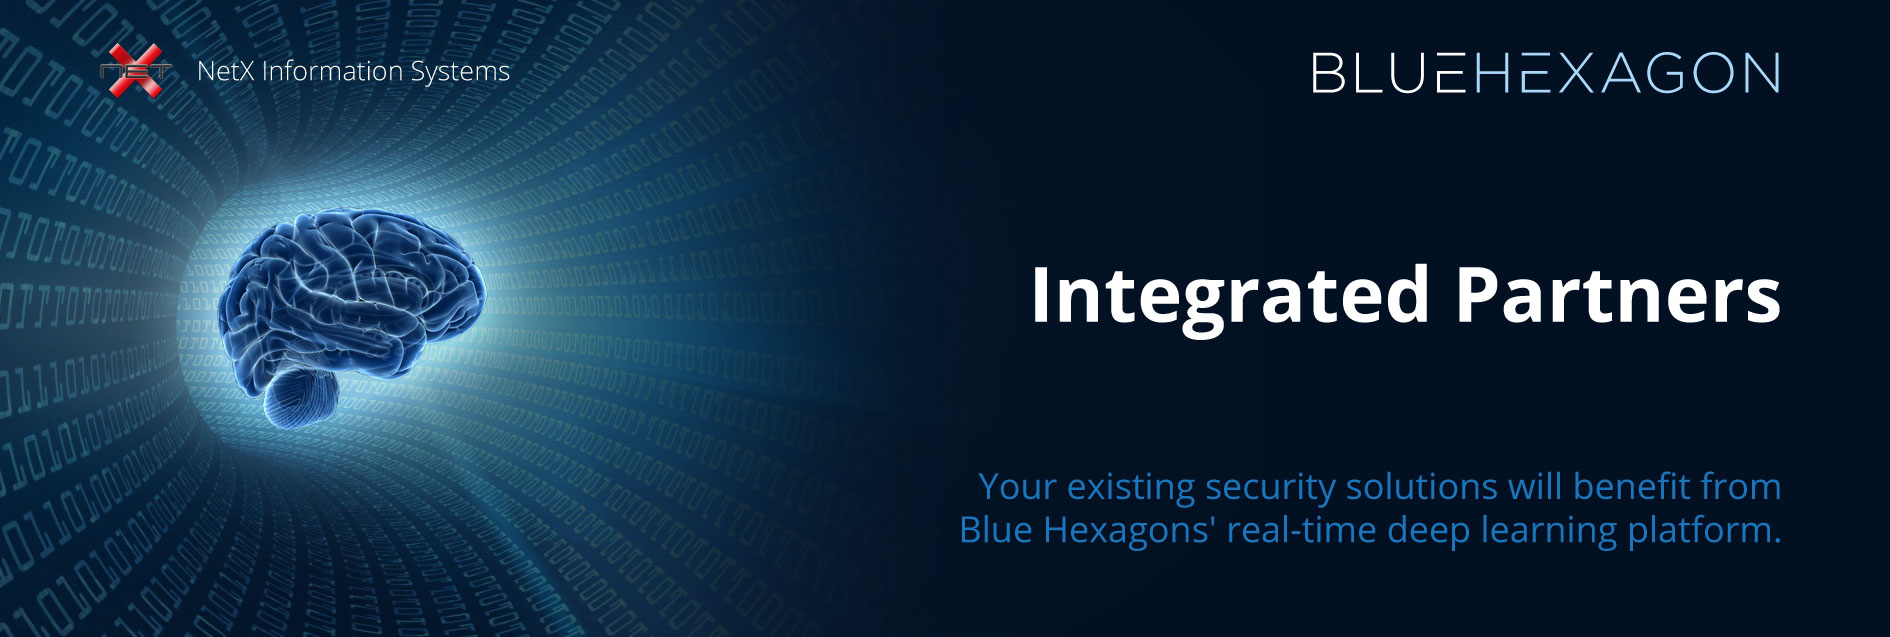 Blue Hexagon Integrated Partners by NetX